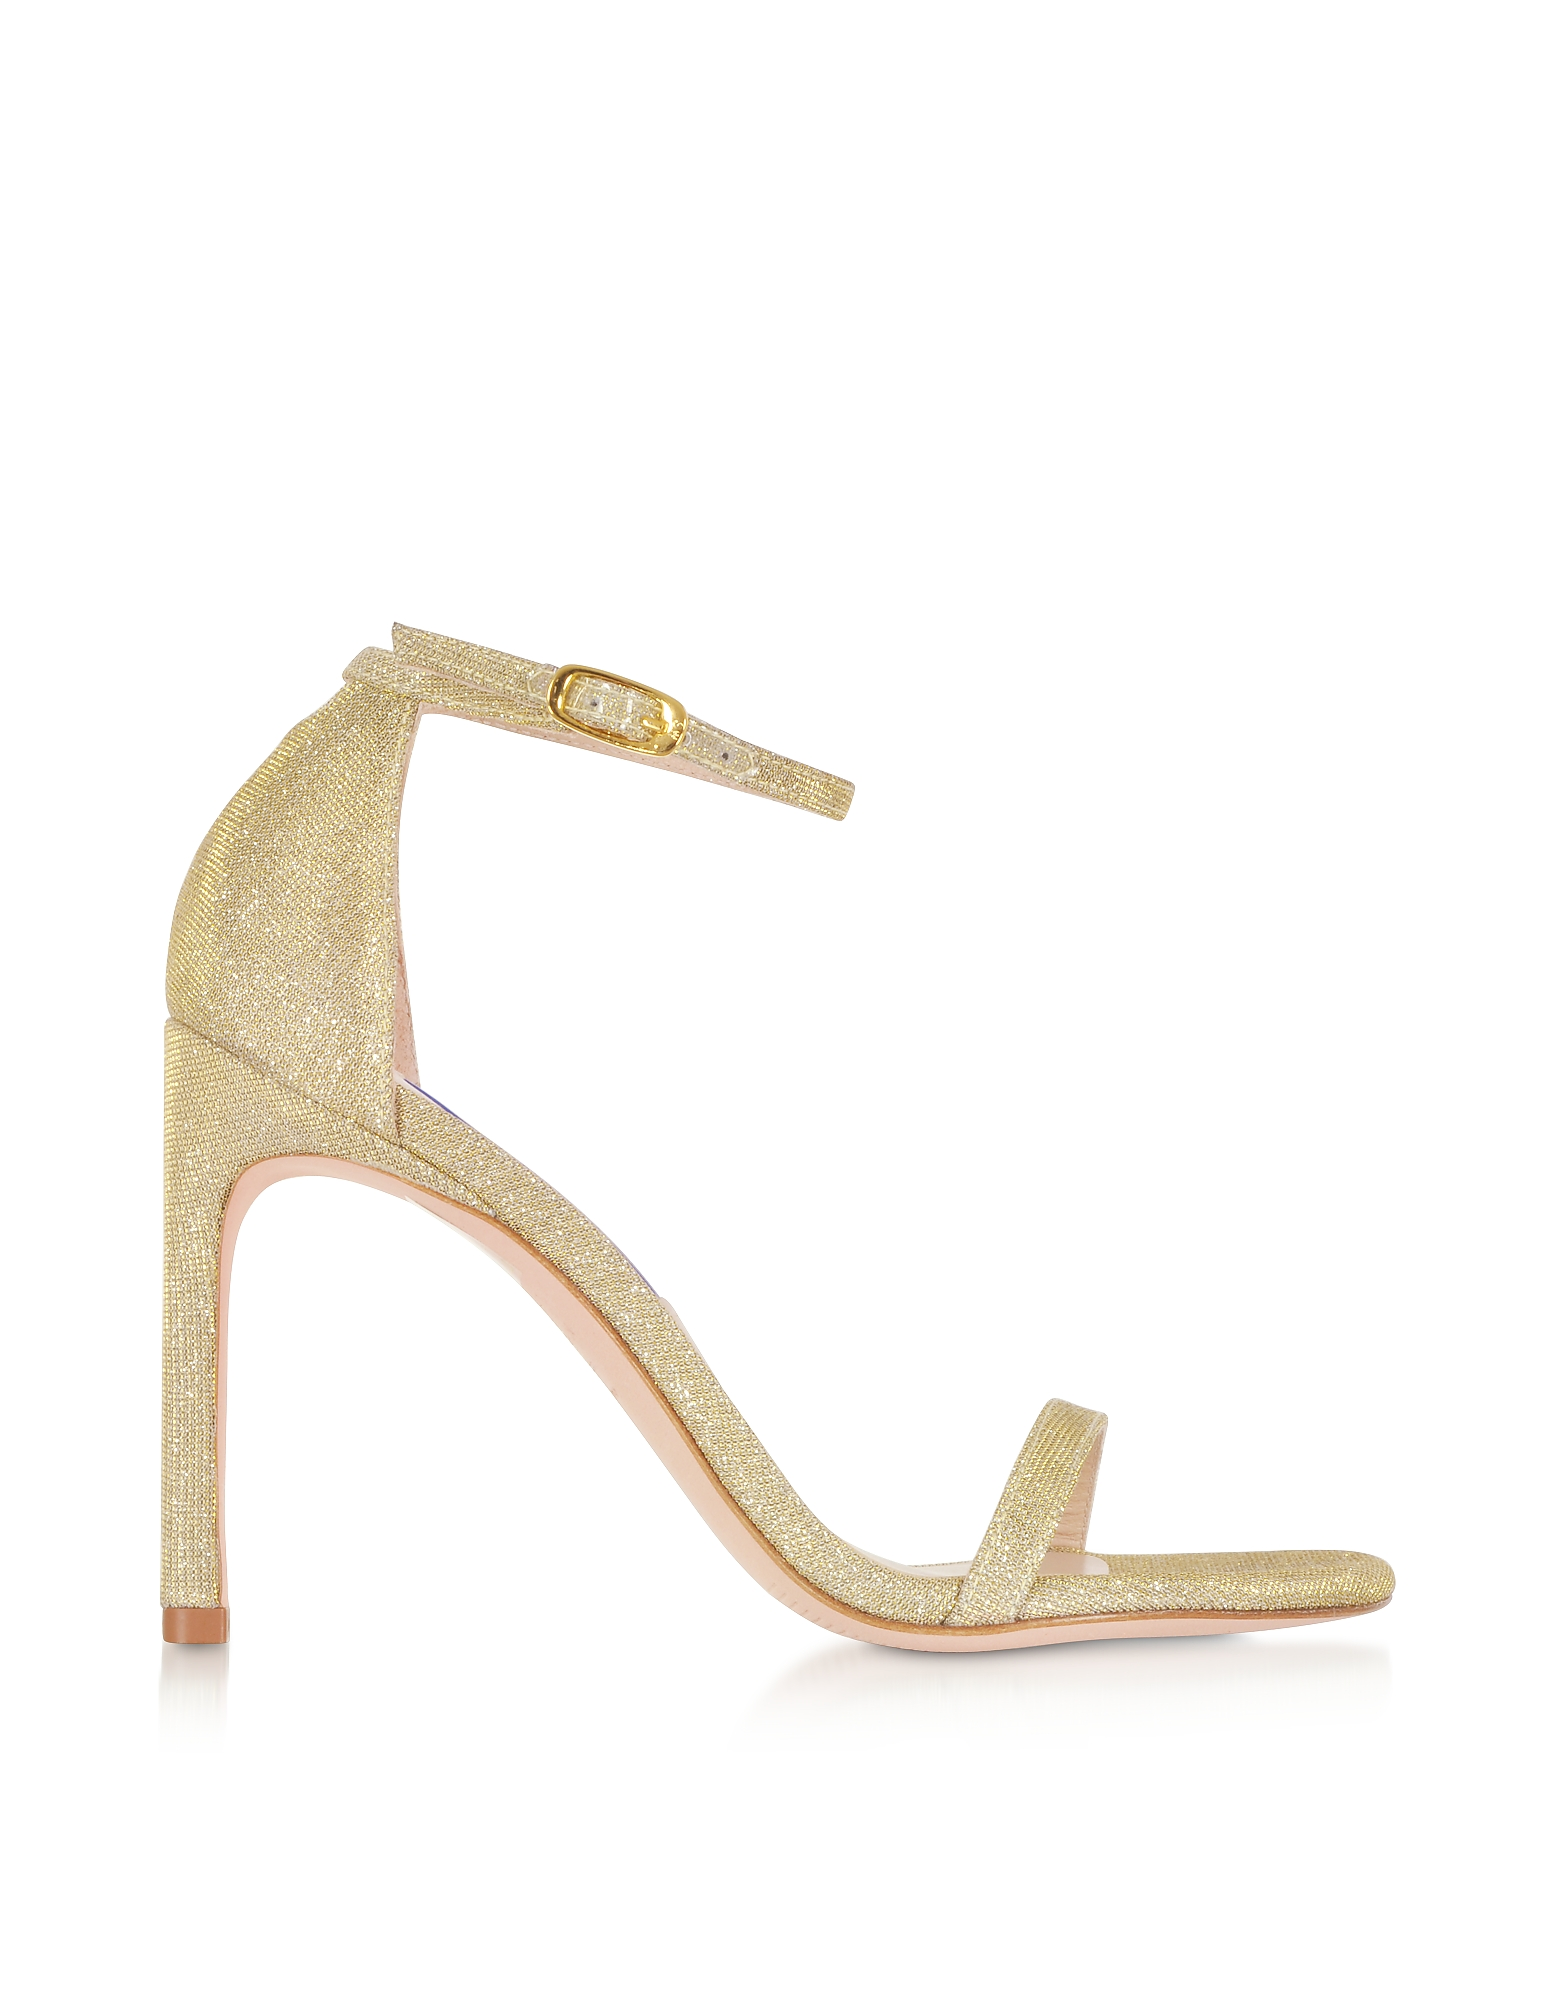 Stuart Weitzman Shoes, Platino Nighttime Nudistsong High Heel Sandals